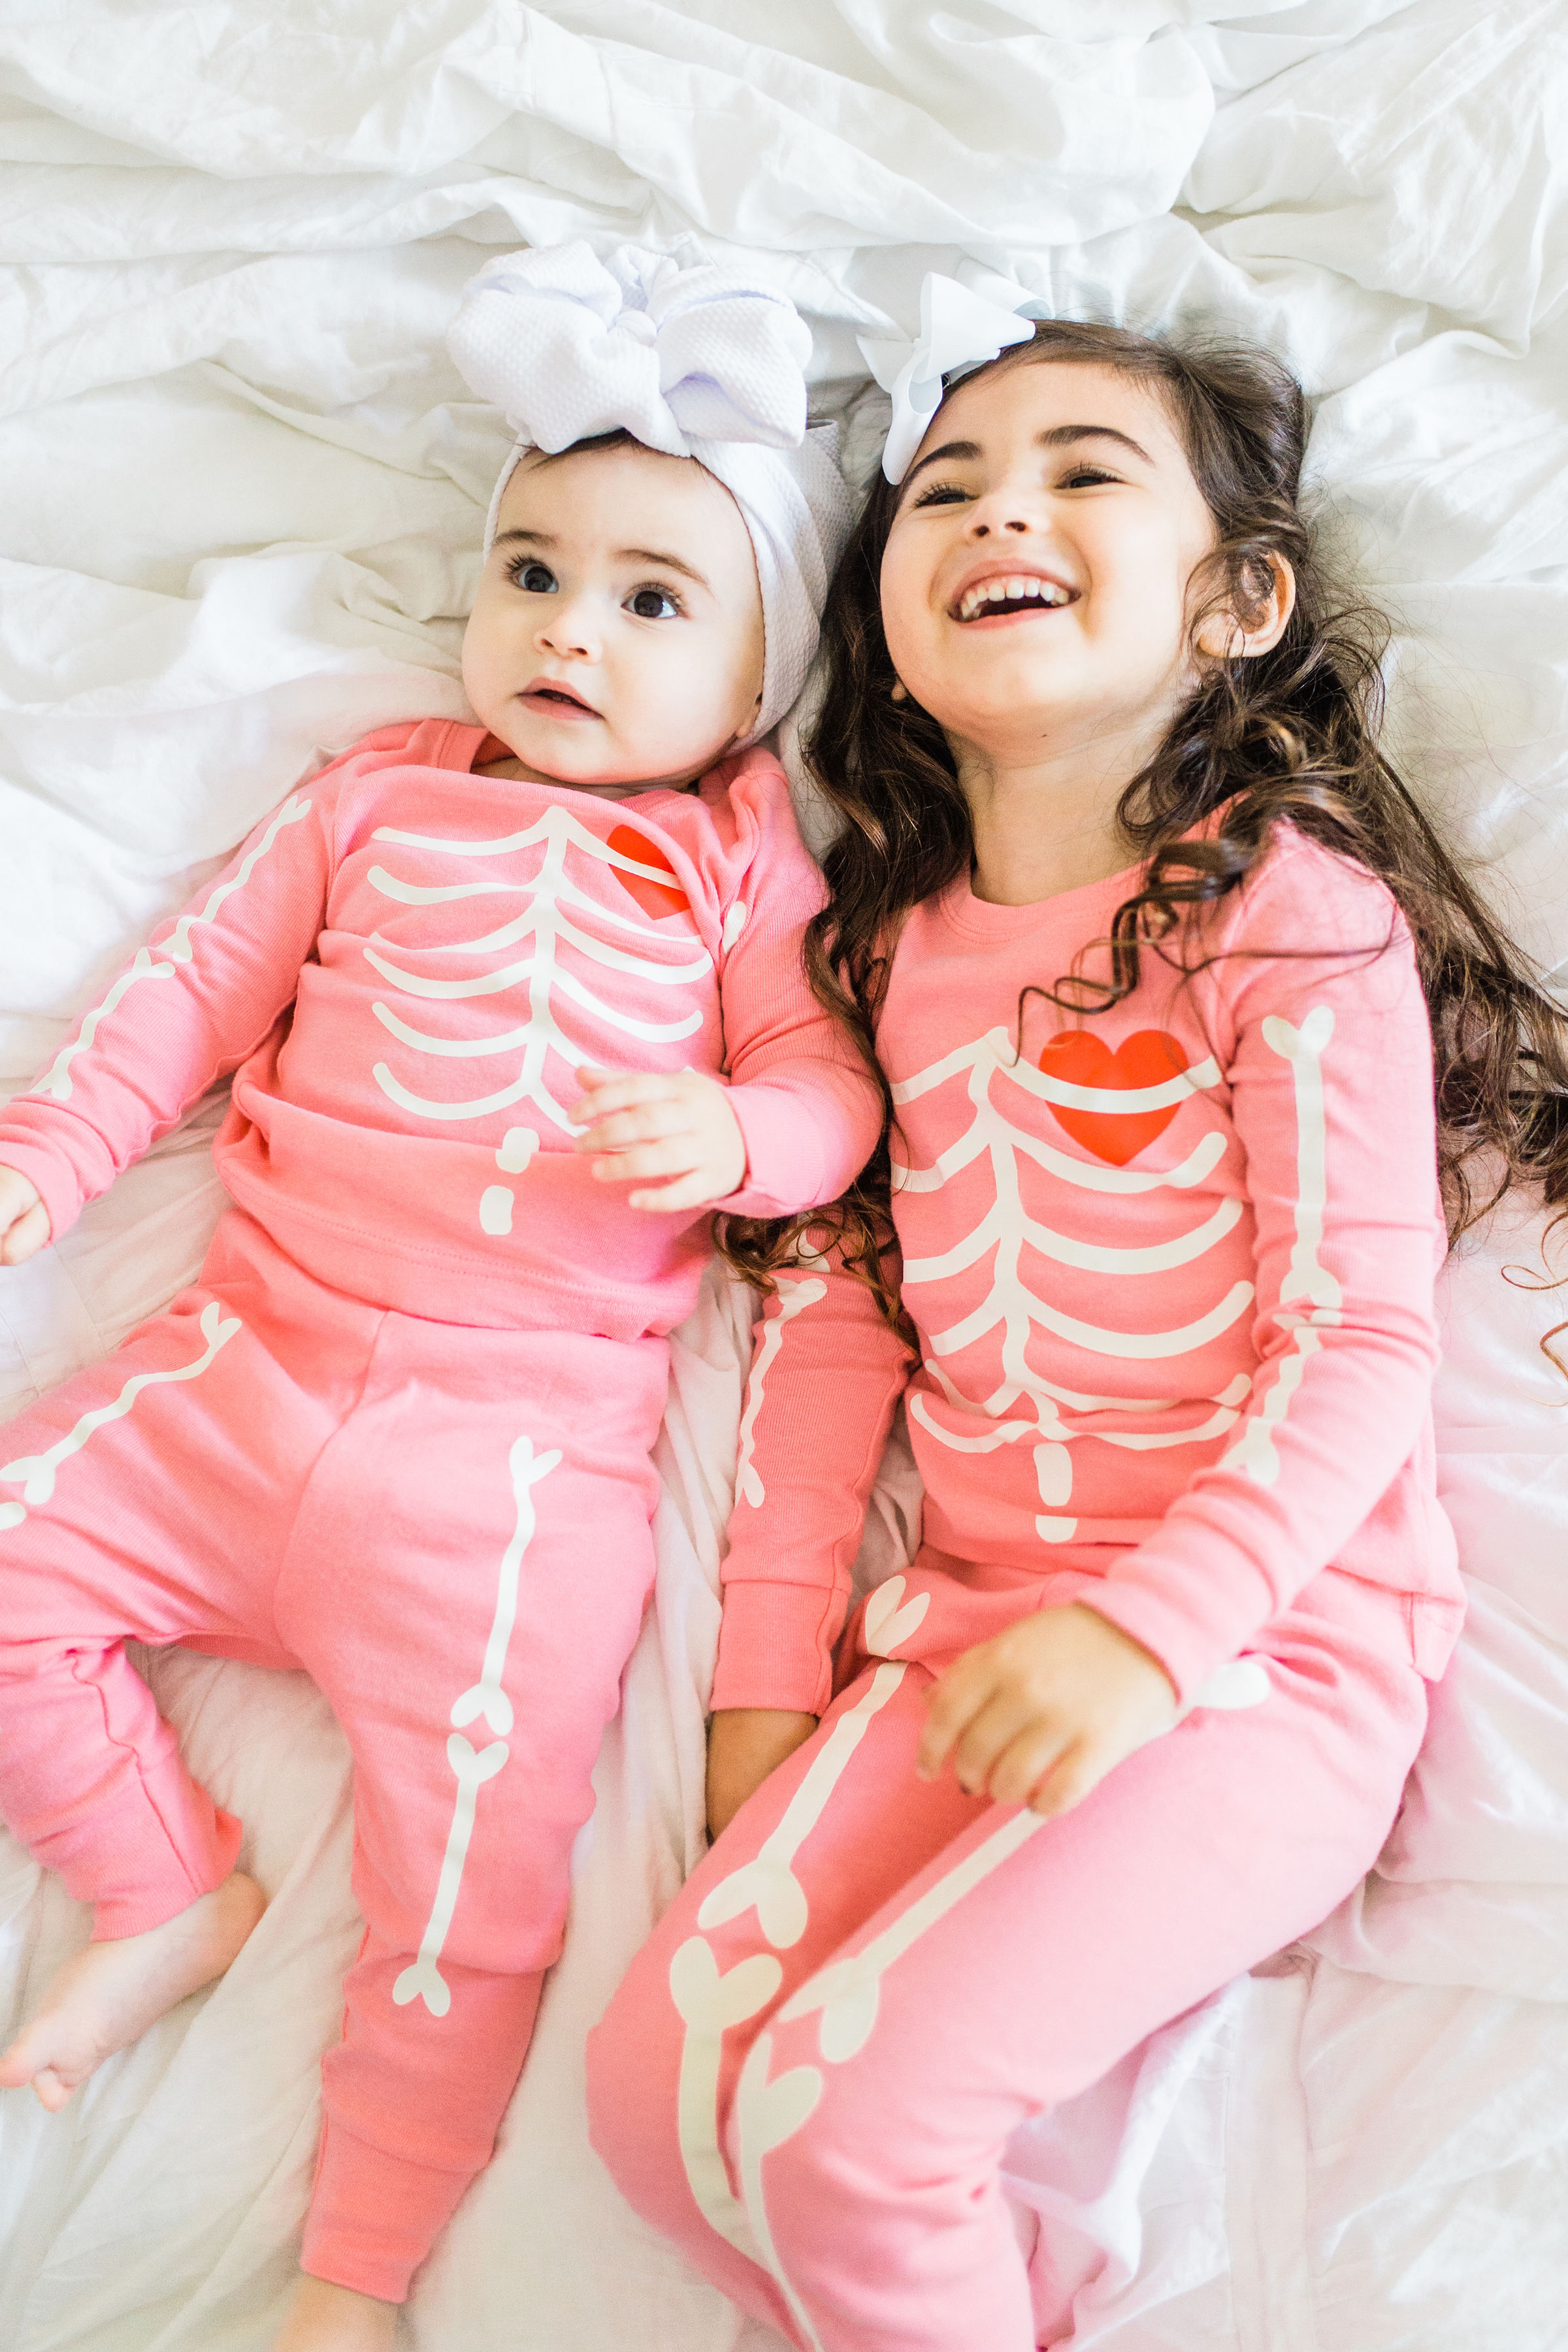 Looking to start a few fun Halloween family traditions? We're sharing our favorites, including a roundup of the best Halloween movies for kids, the cutest matching Halloween pajamas for your little ones, and plenty of spooky party inspiration and recipes! Click through for the details. #halloween #halloweenpajamas #halloweenideas #halloweentraditions #familyhalloween  #kidshalloweenfun #kidshalloweenpajamas #babyhalloween | glitterinc.com | @glitterinc